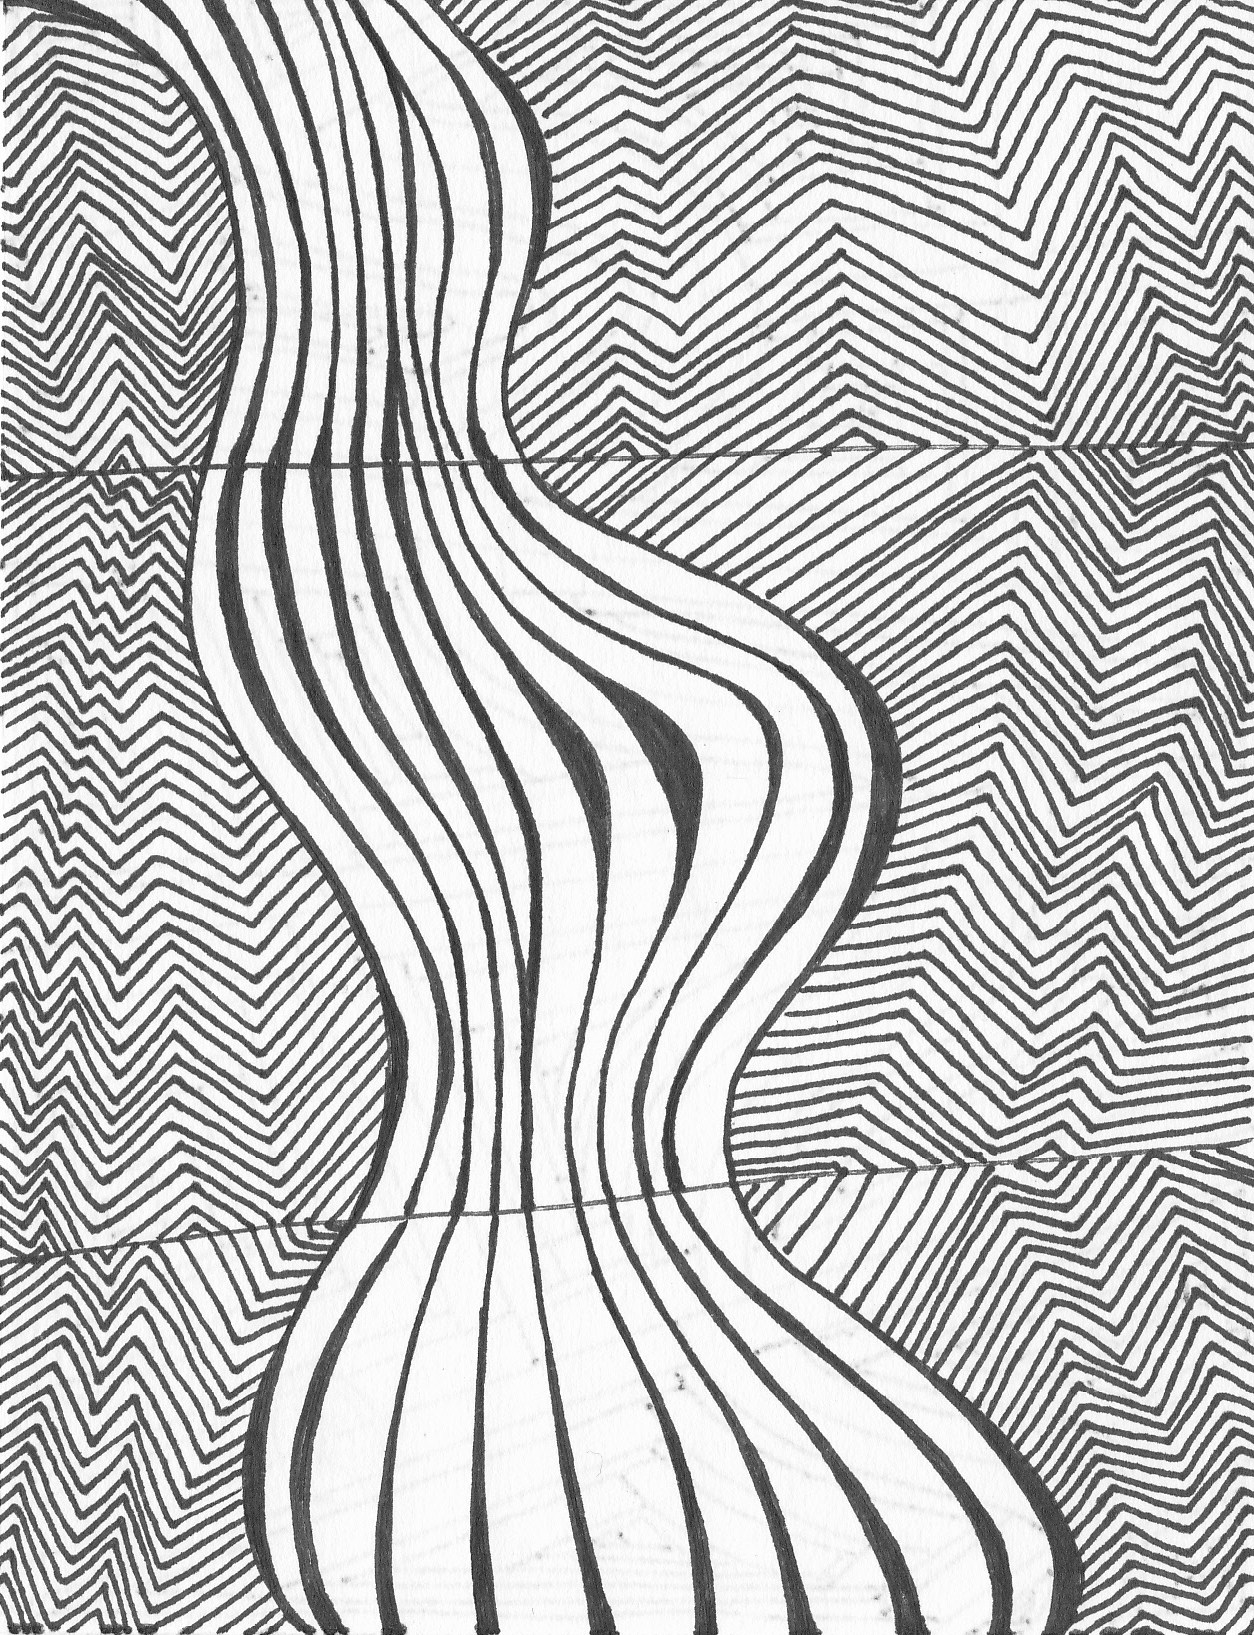 Line Texture : Texture drawing at getdrawings free for personal use